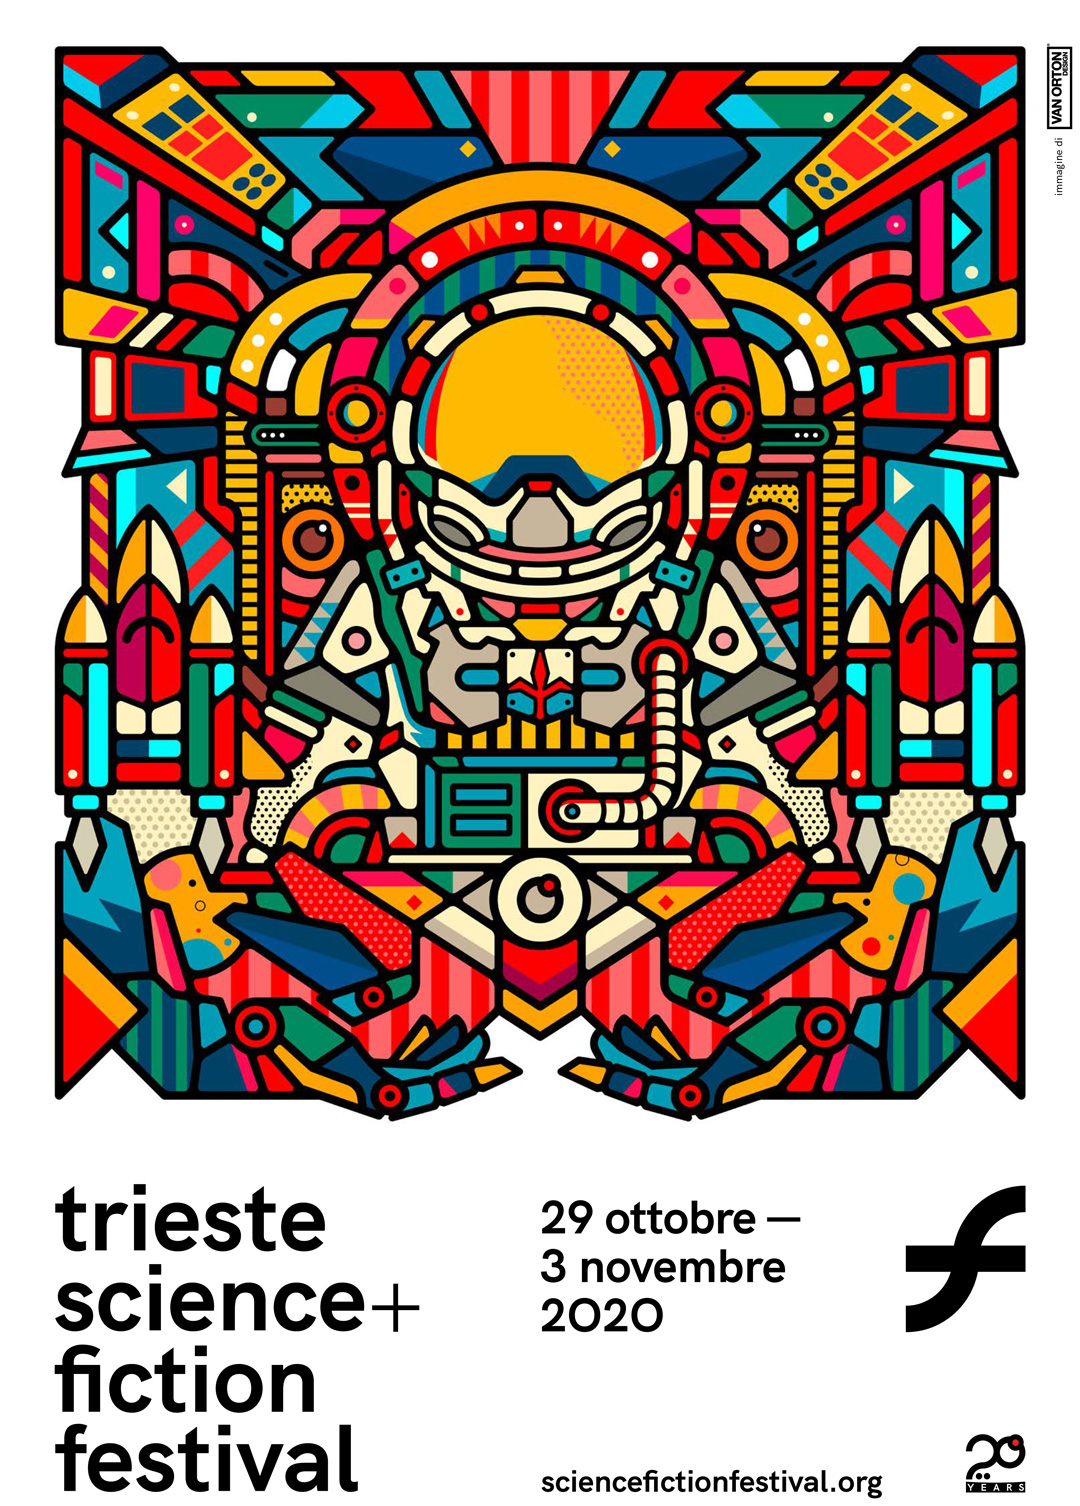 TSFF20-Trieste-ScienceFiction-Poster-202